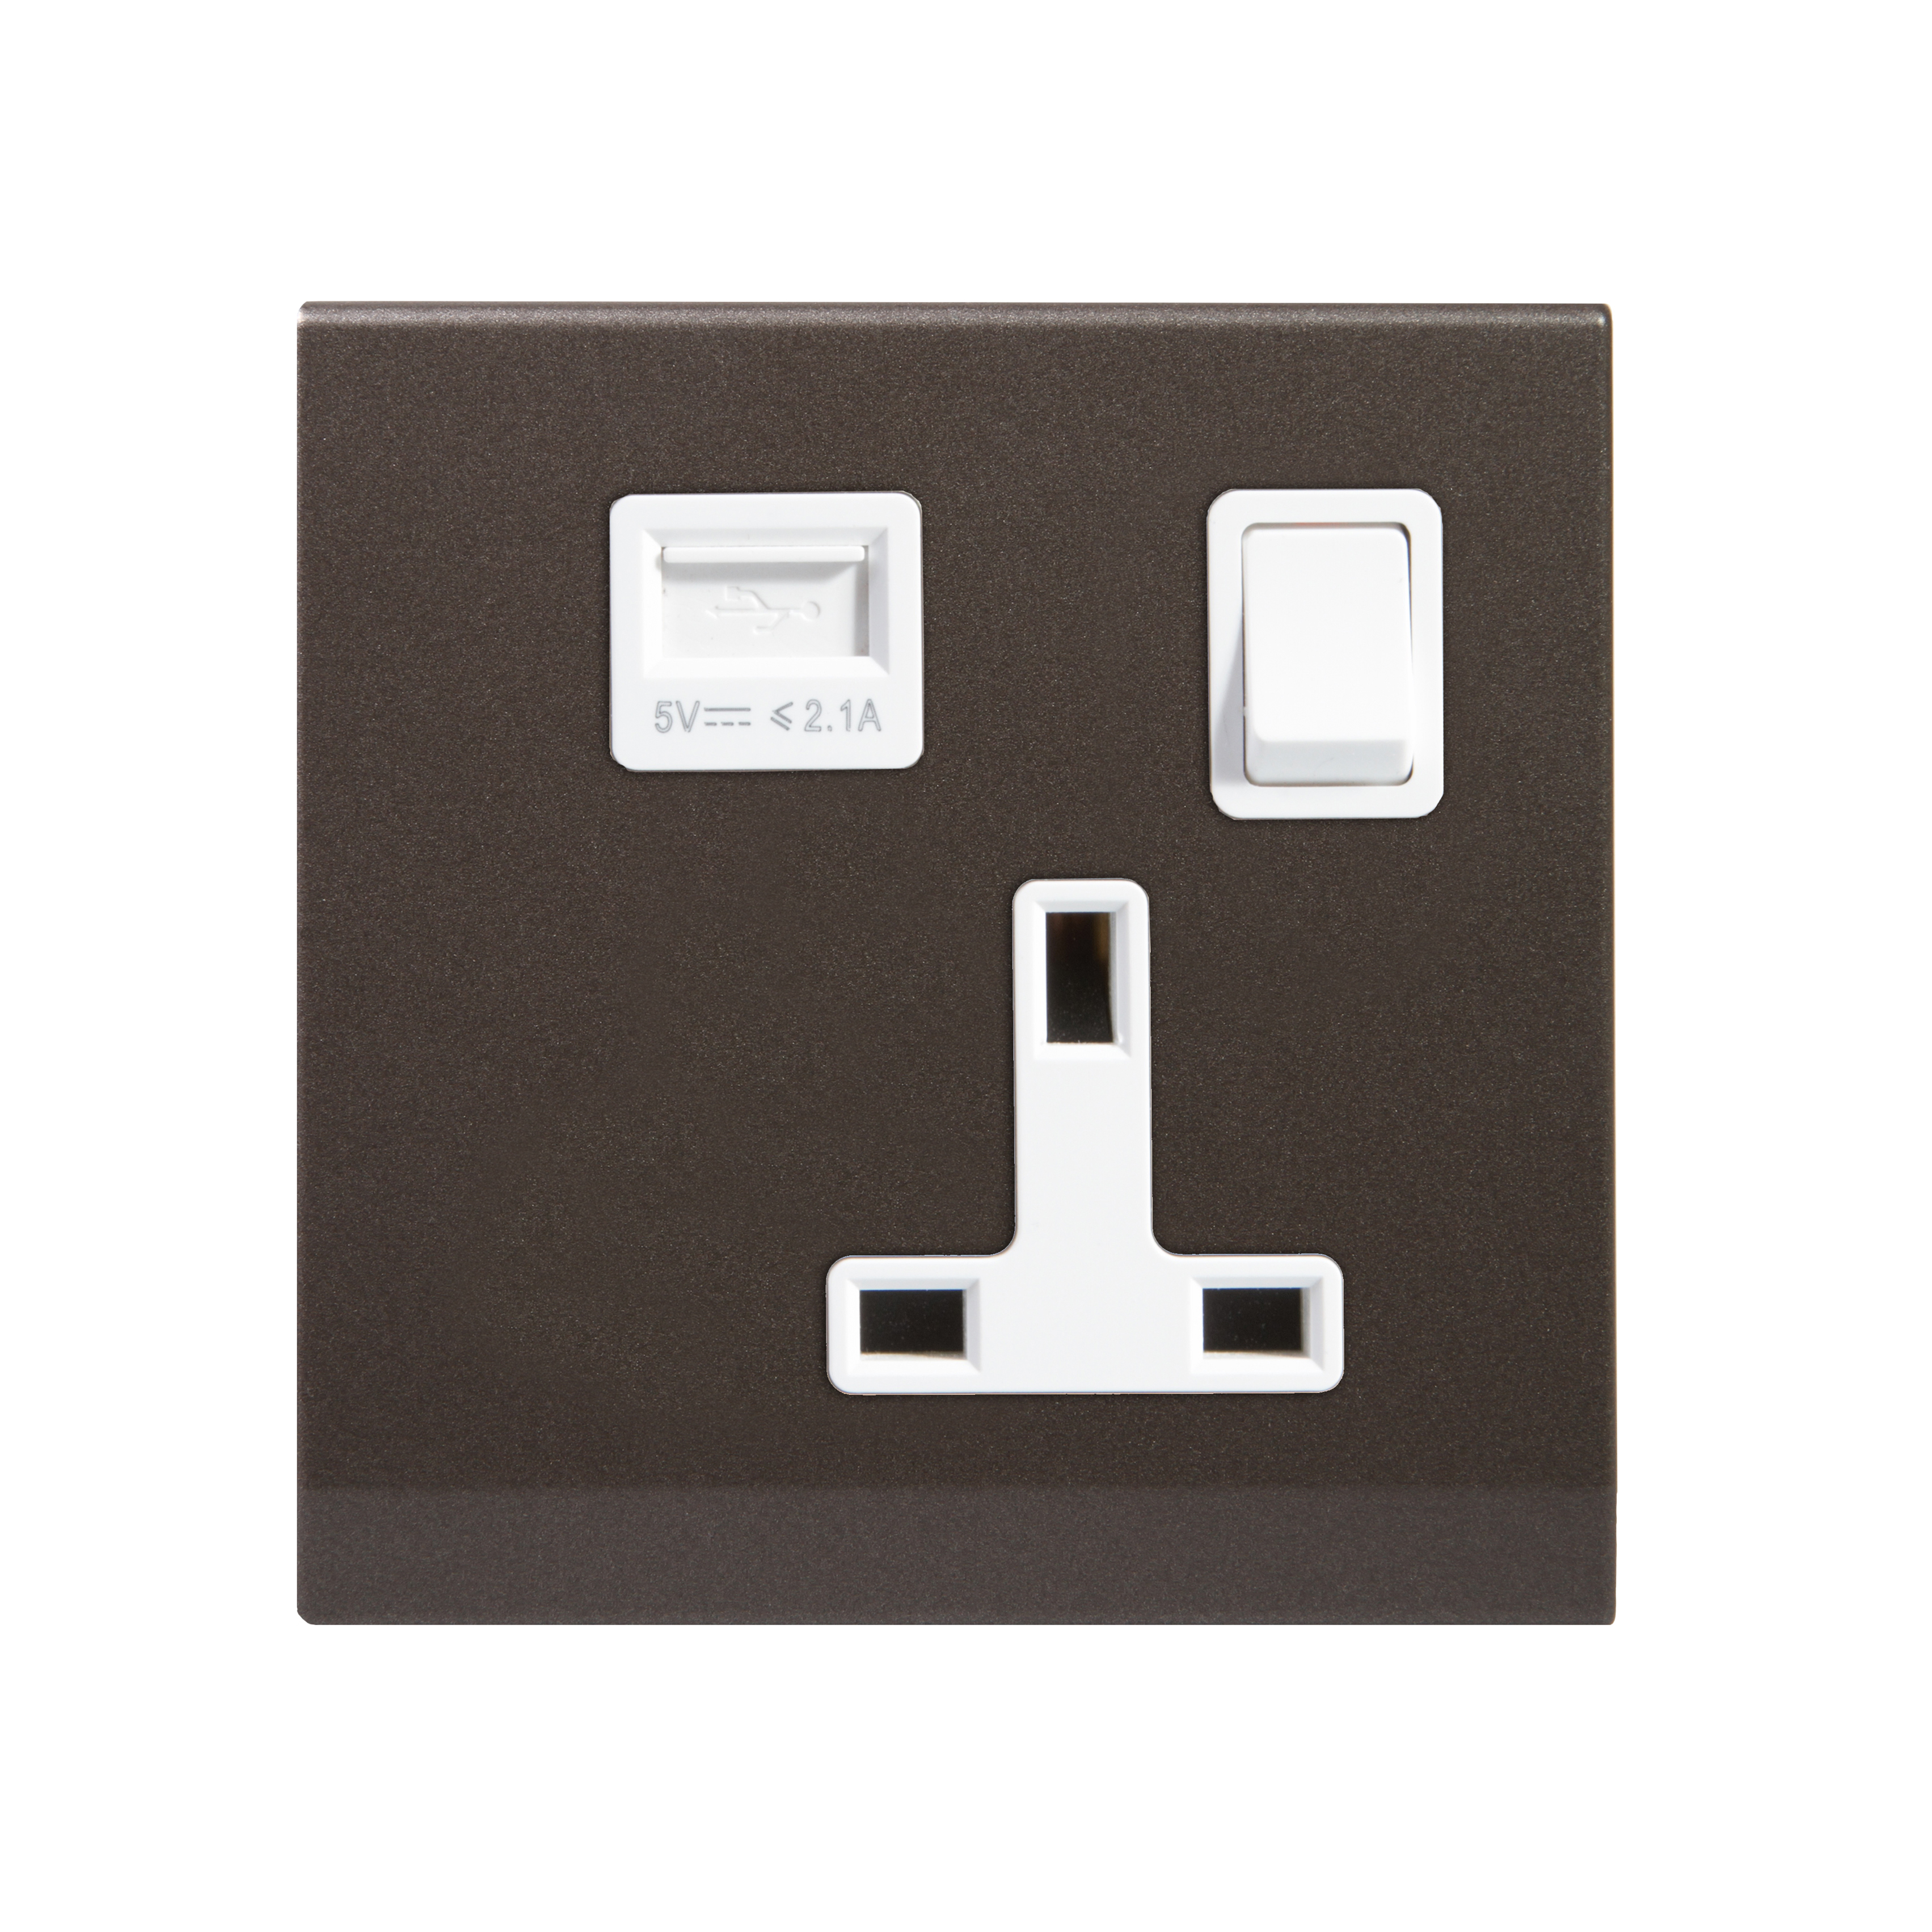 Simplicity 13A Single Plug Socket & USB with Switch Charcoal